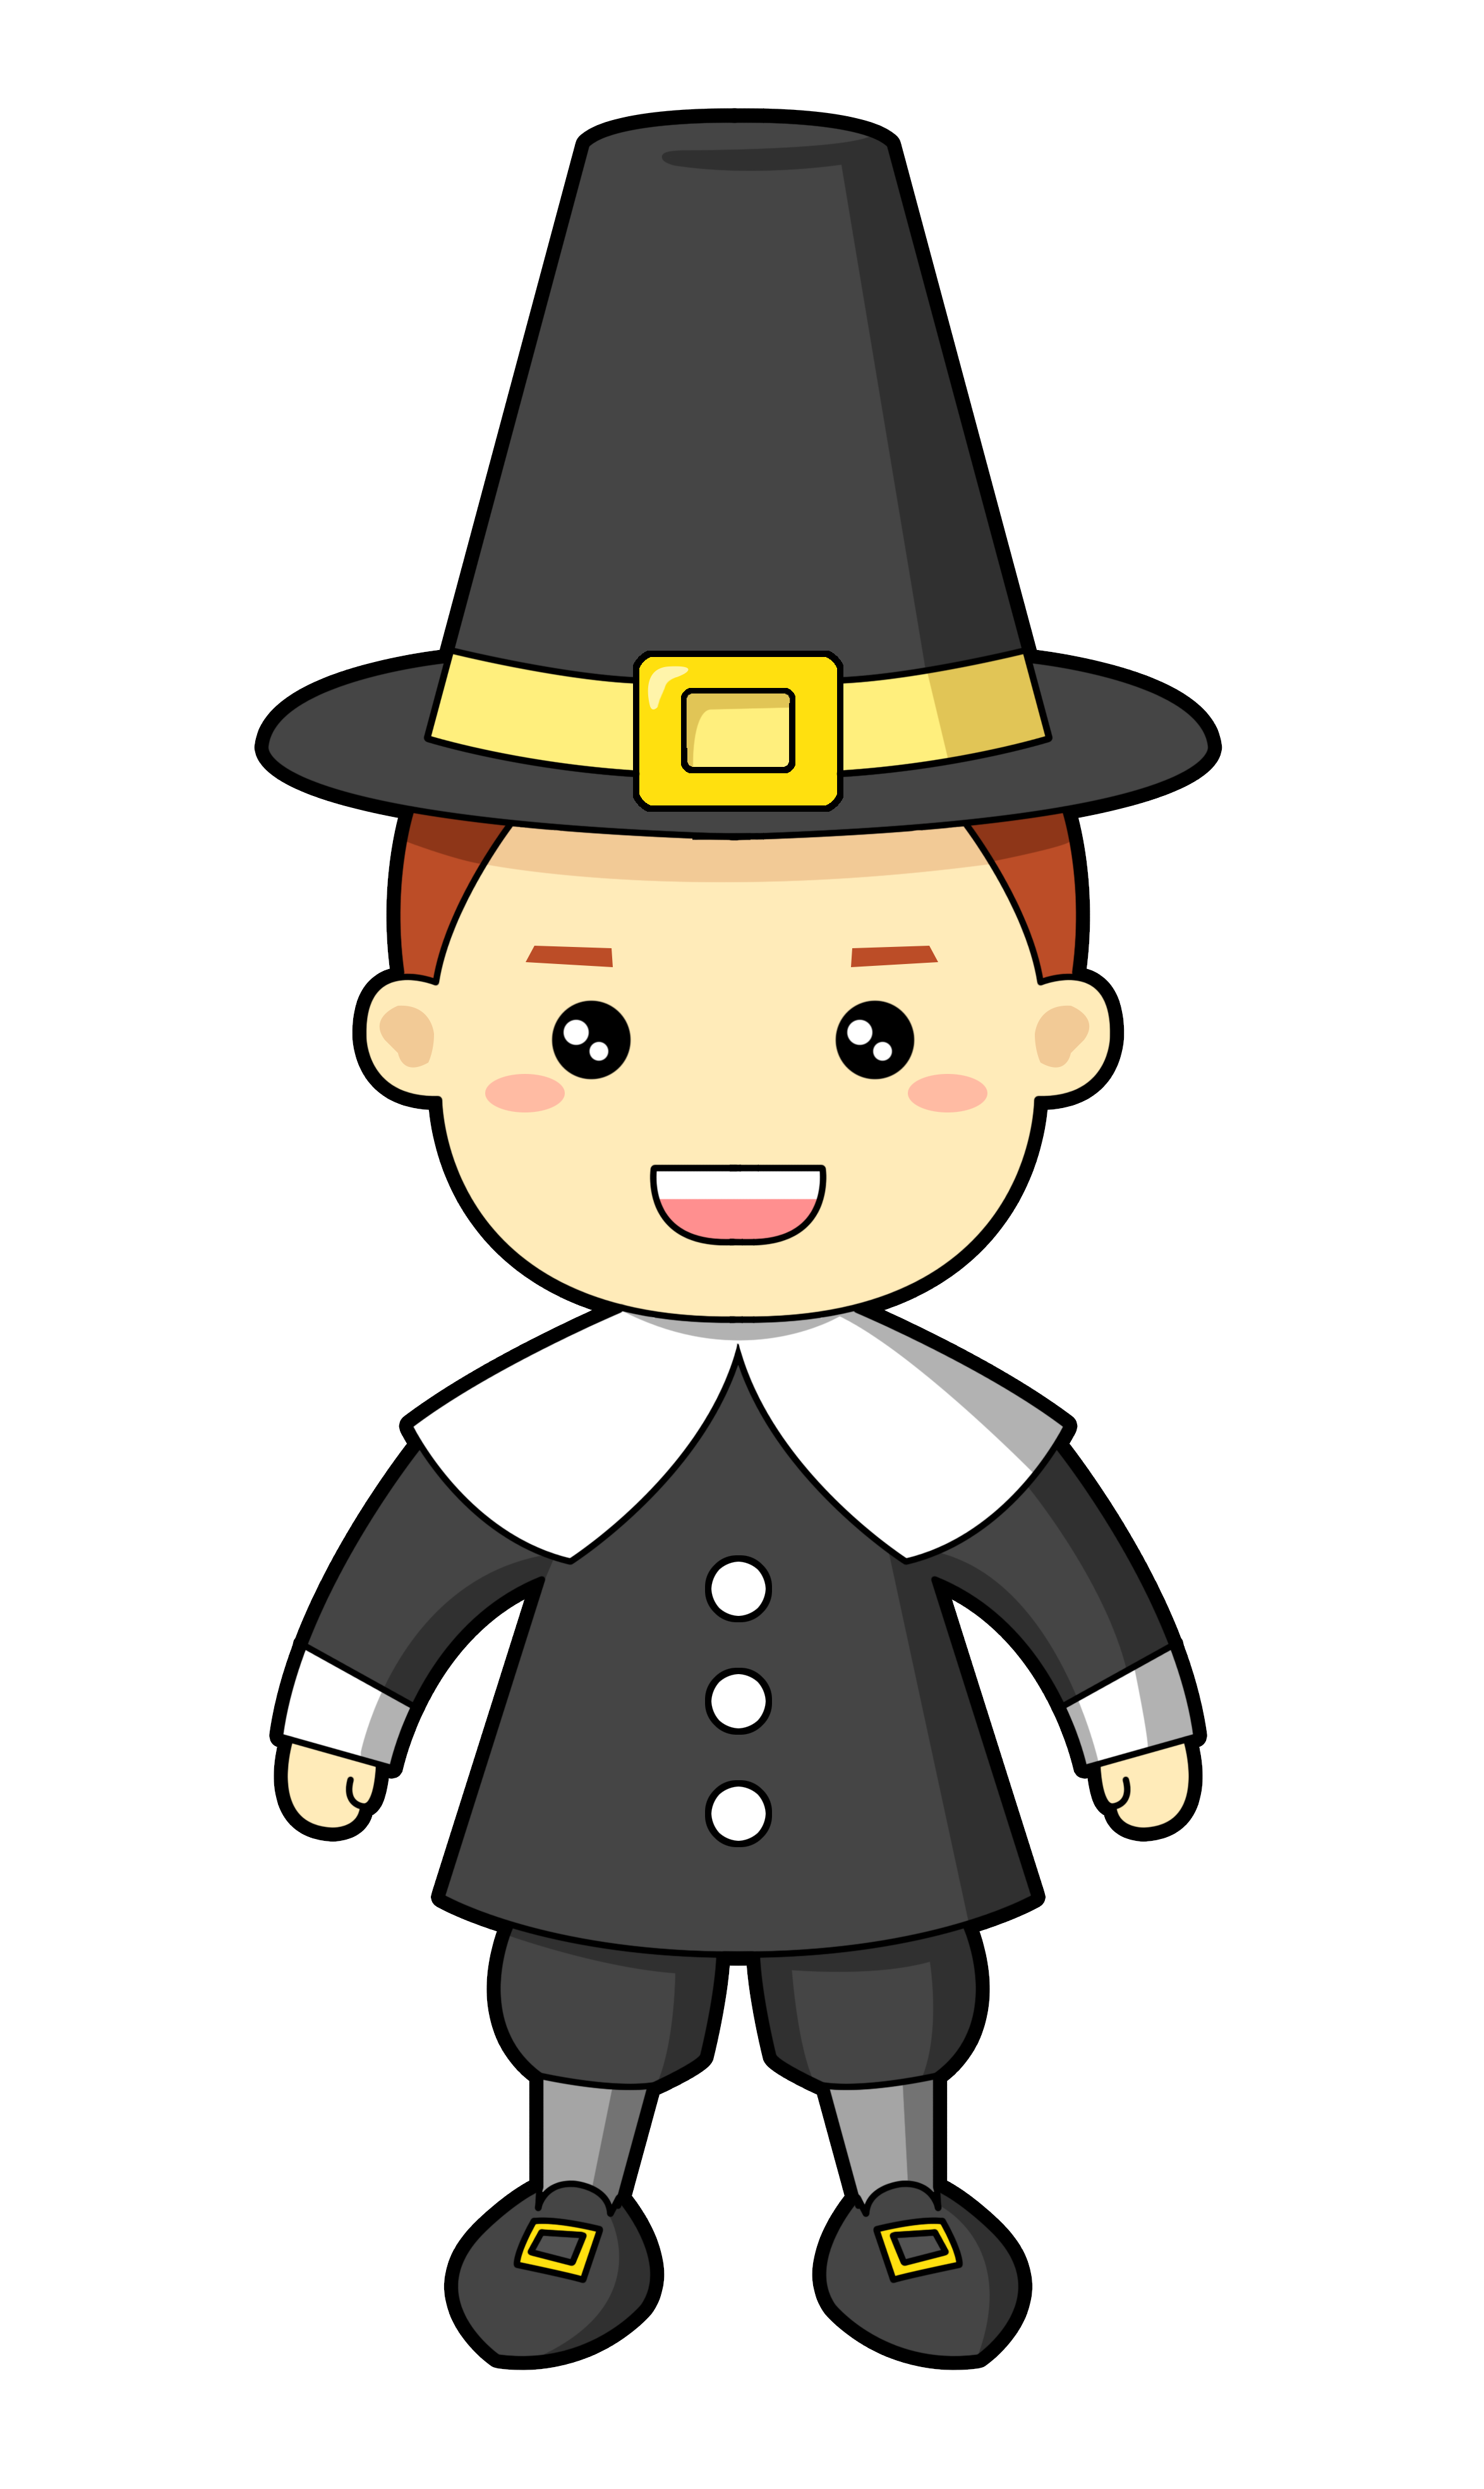 Pilgrim cartoon clipart picture black and white library Pilgrim free to use cliparts - Cliparting.com picture black and white library